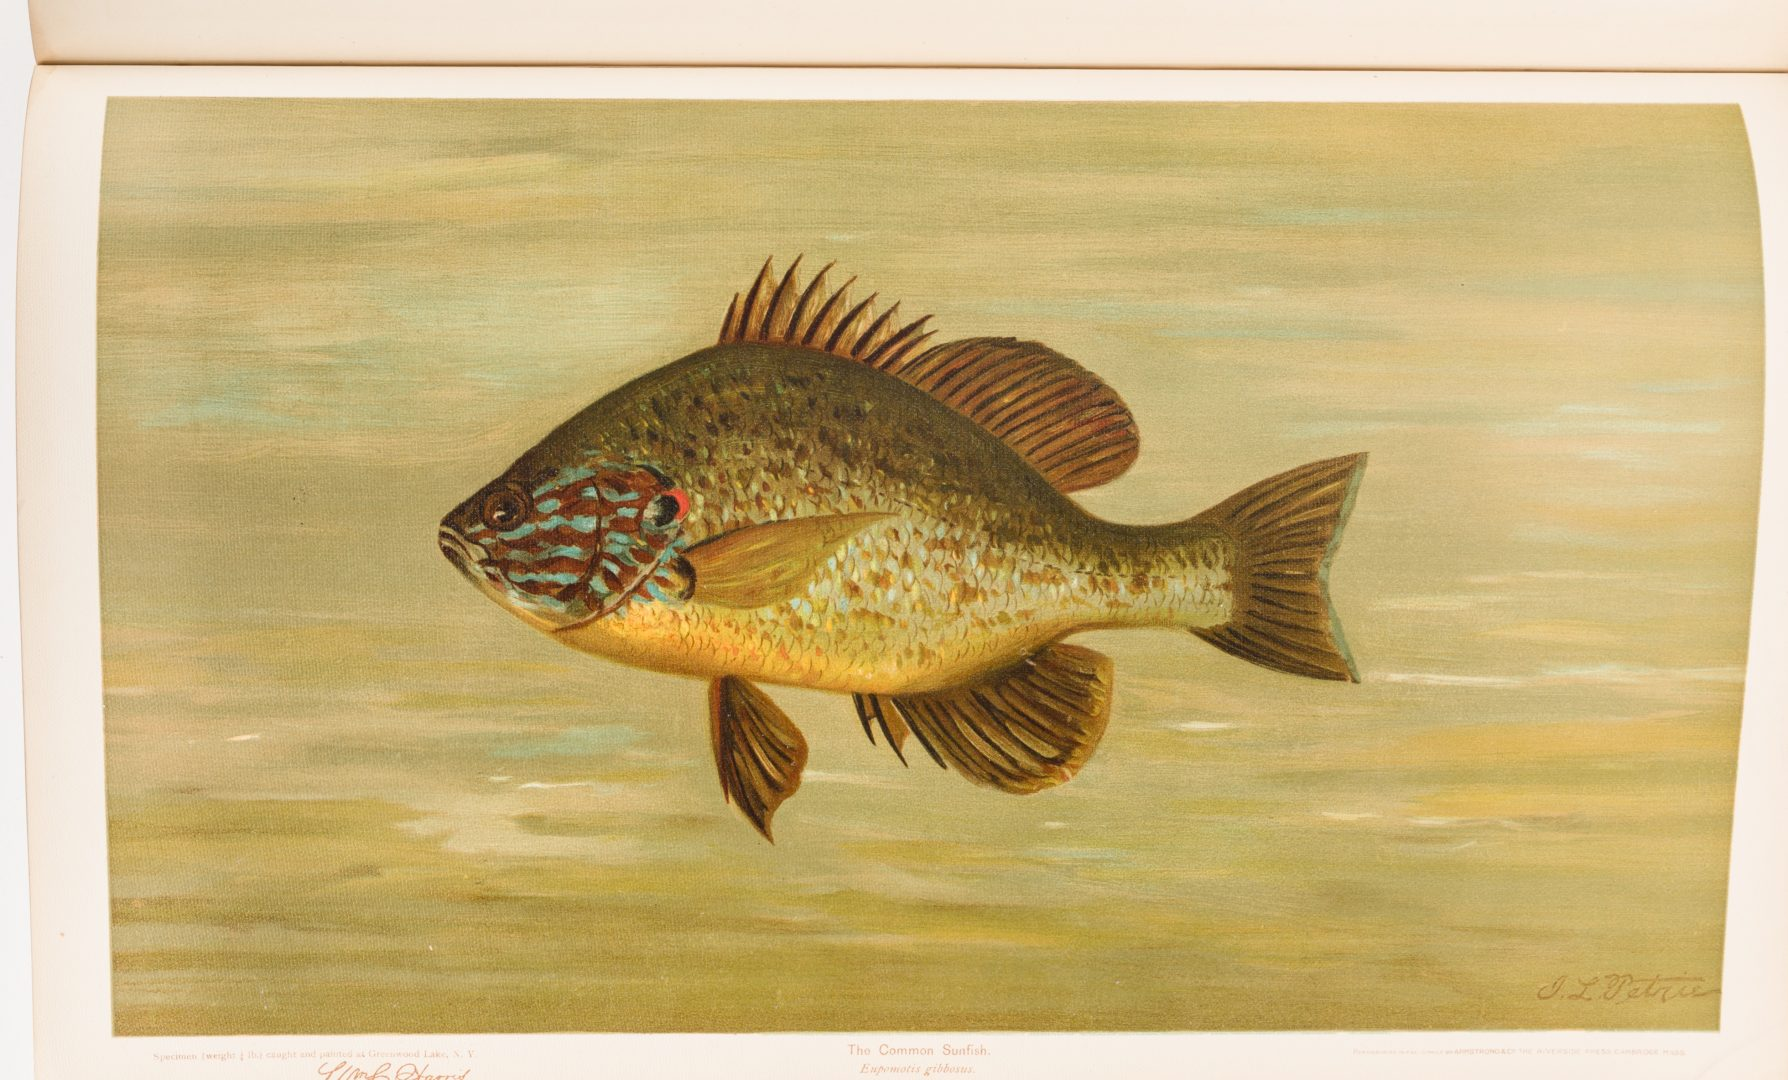 Lot 455: The Fishes of North America, William C. Harris, 1898